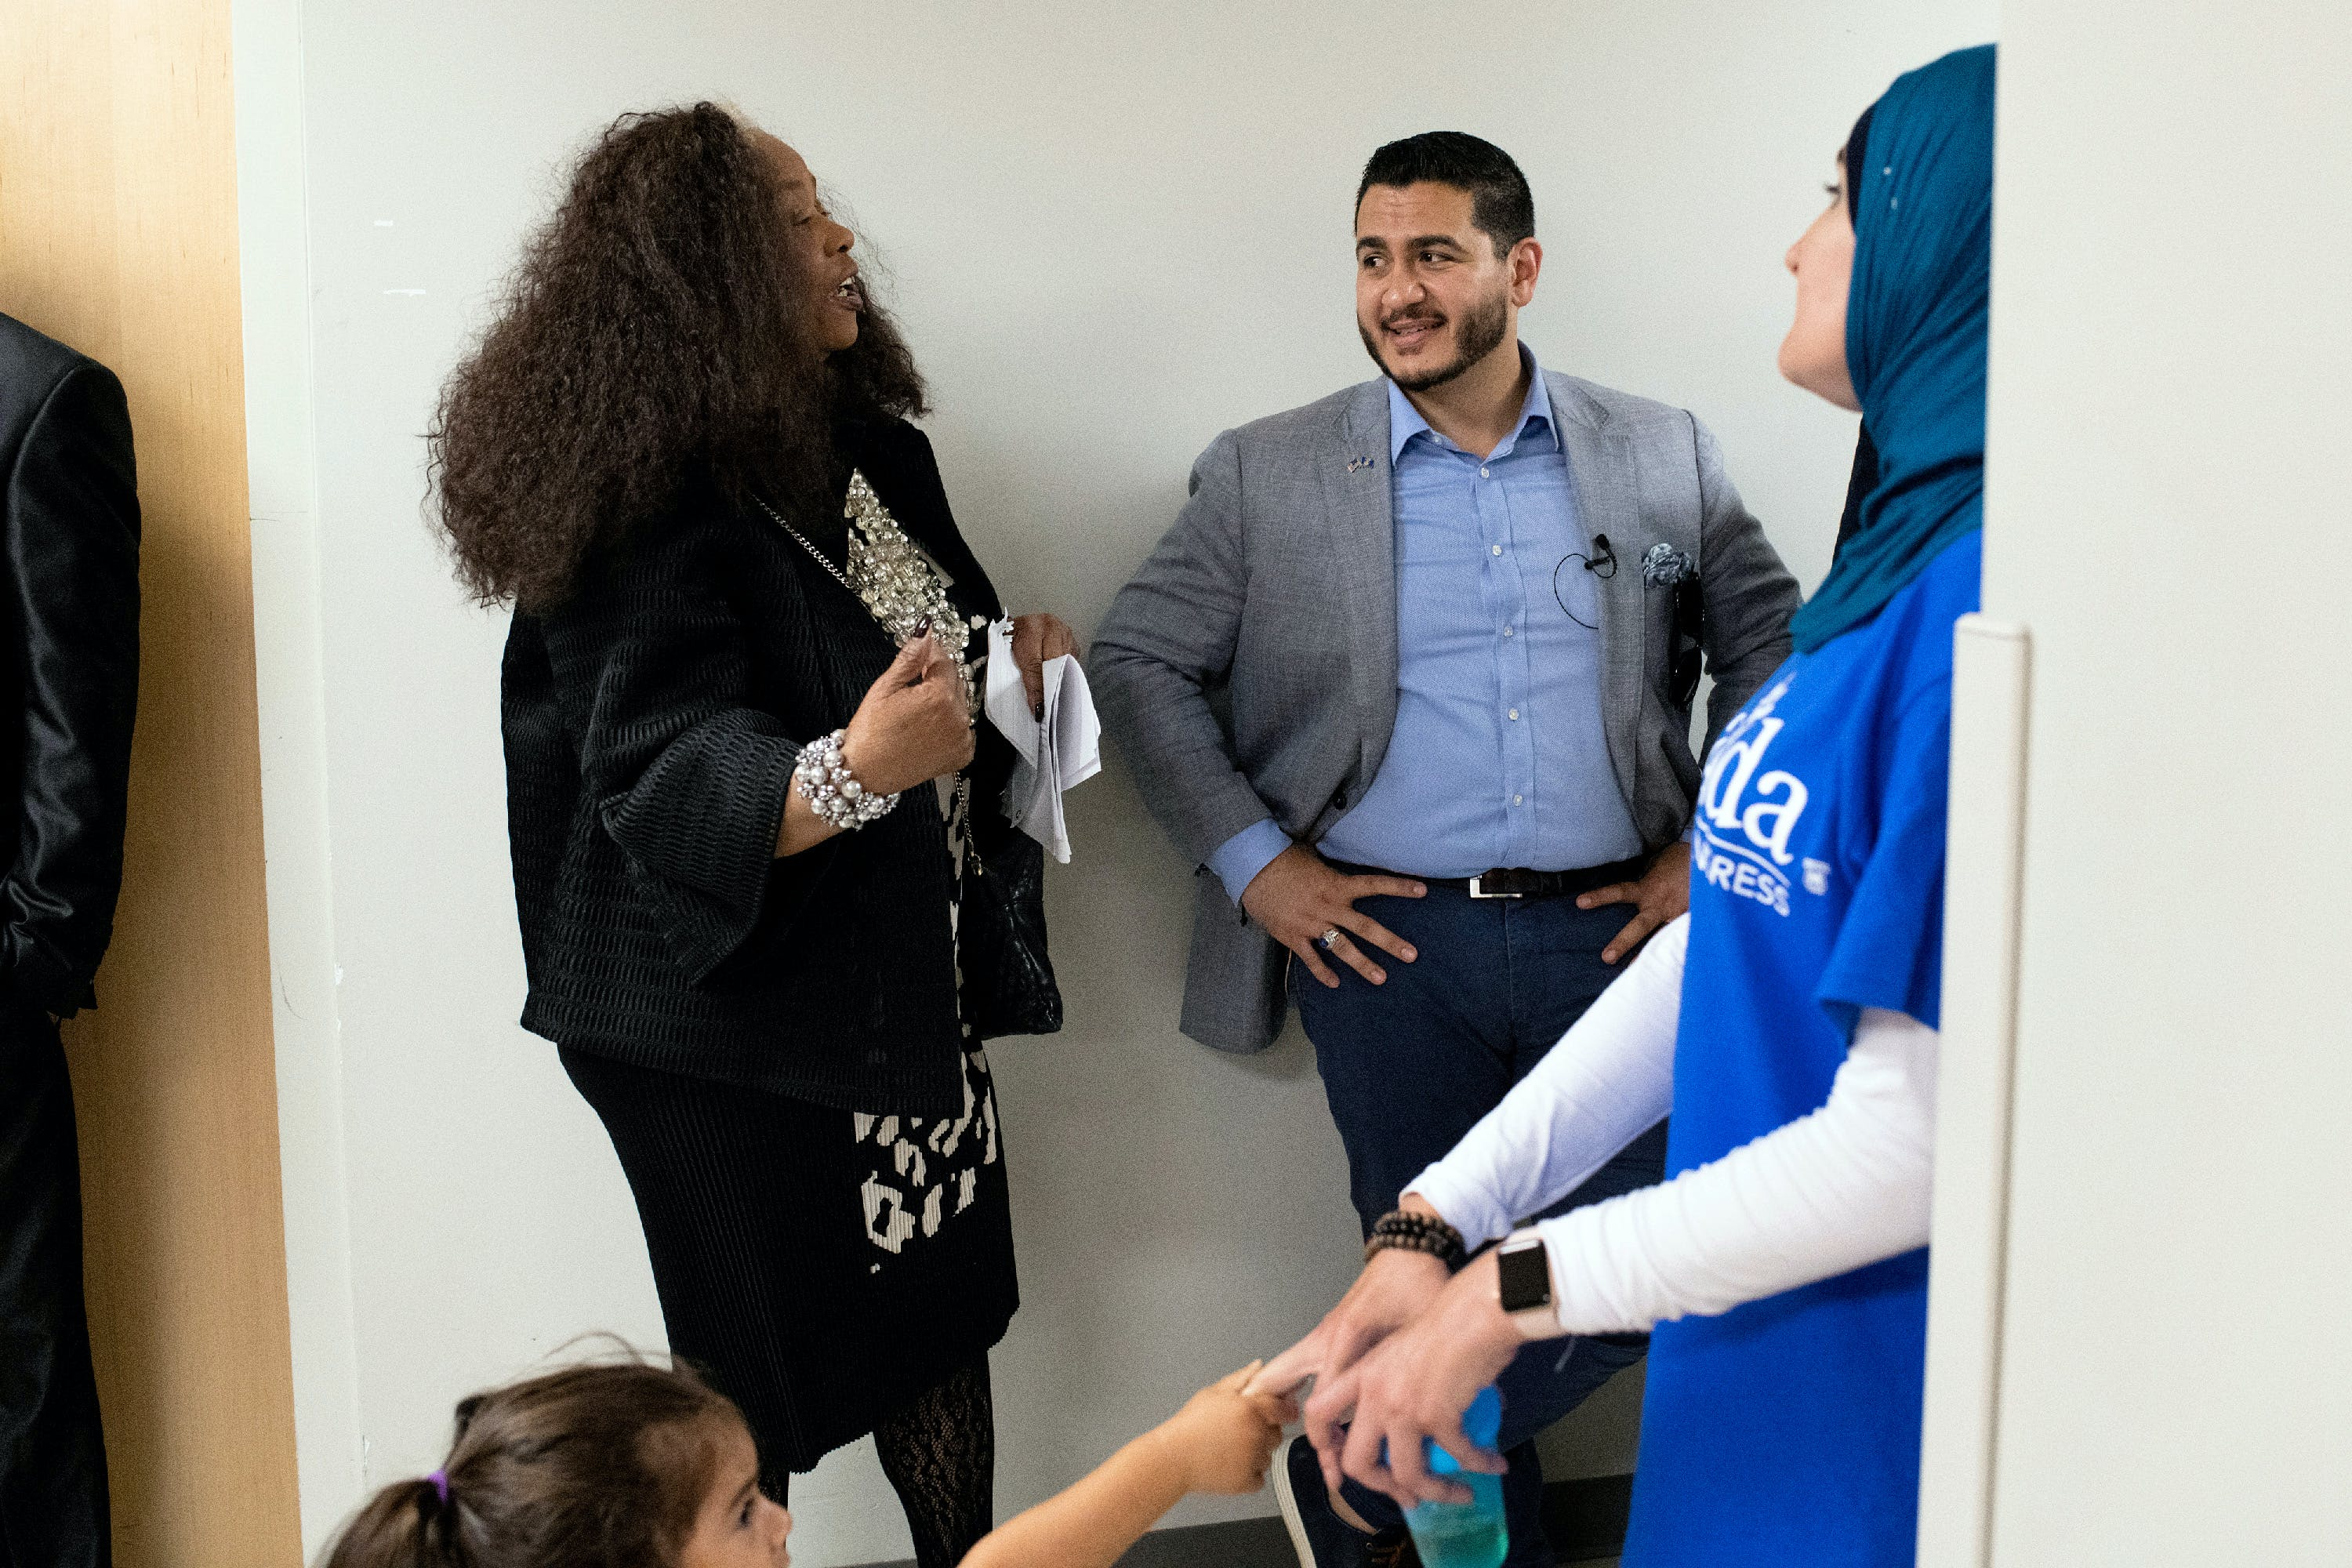 From left, Virgie Rollins, Chair of the Democratic National Committee (DNC) Black Caucus, talks to Michigan Democratic Gubernatorial candidate Abdul El-Sayed backstage during El-Sayed's campaign rally with Alexandria Ocasio-Cortez at the Wayne State University Student Center in Detroit, Michigan on Saturday, July 28, 2018. (Rachel Woolf for The Intercept)